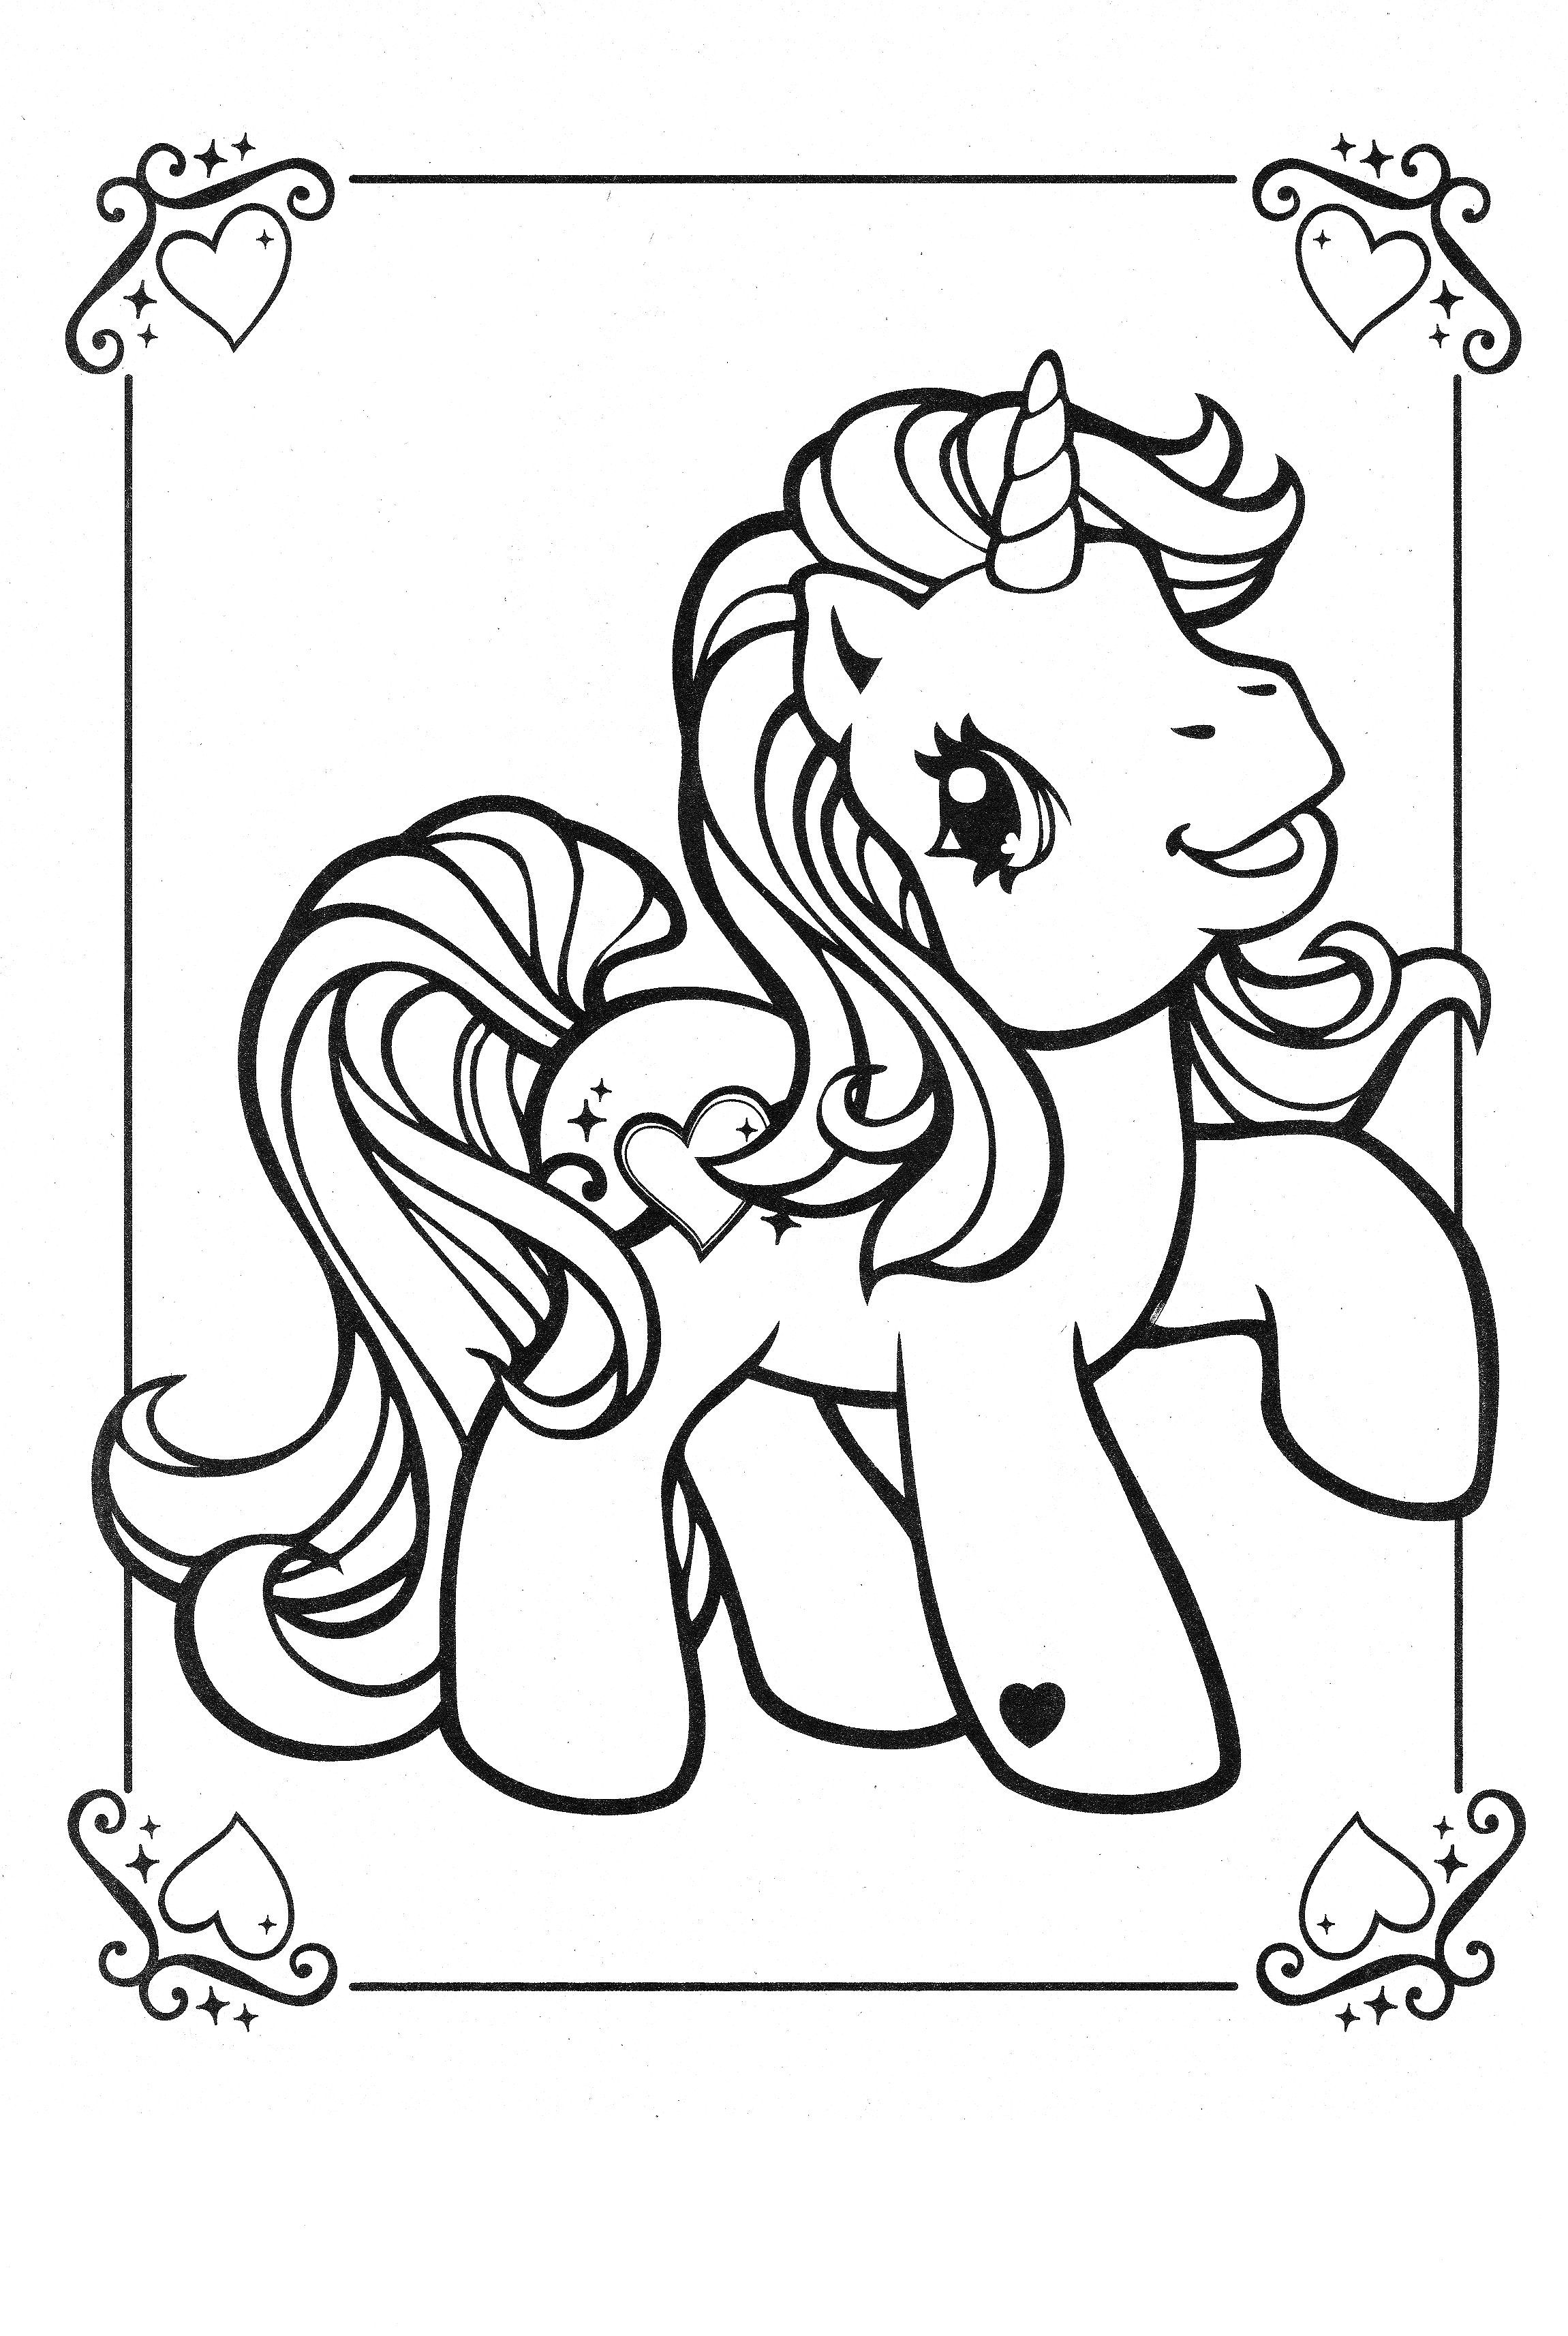 Old My Little Pony Coloring Pages My Little Pony Coloring Old My Little Pony Unicorn Coloring Pages [ 3428 x 2301 Pixel ]